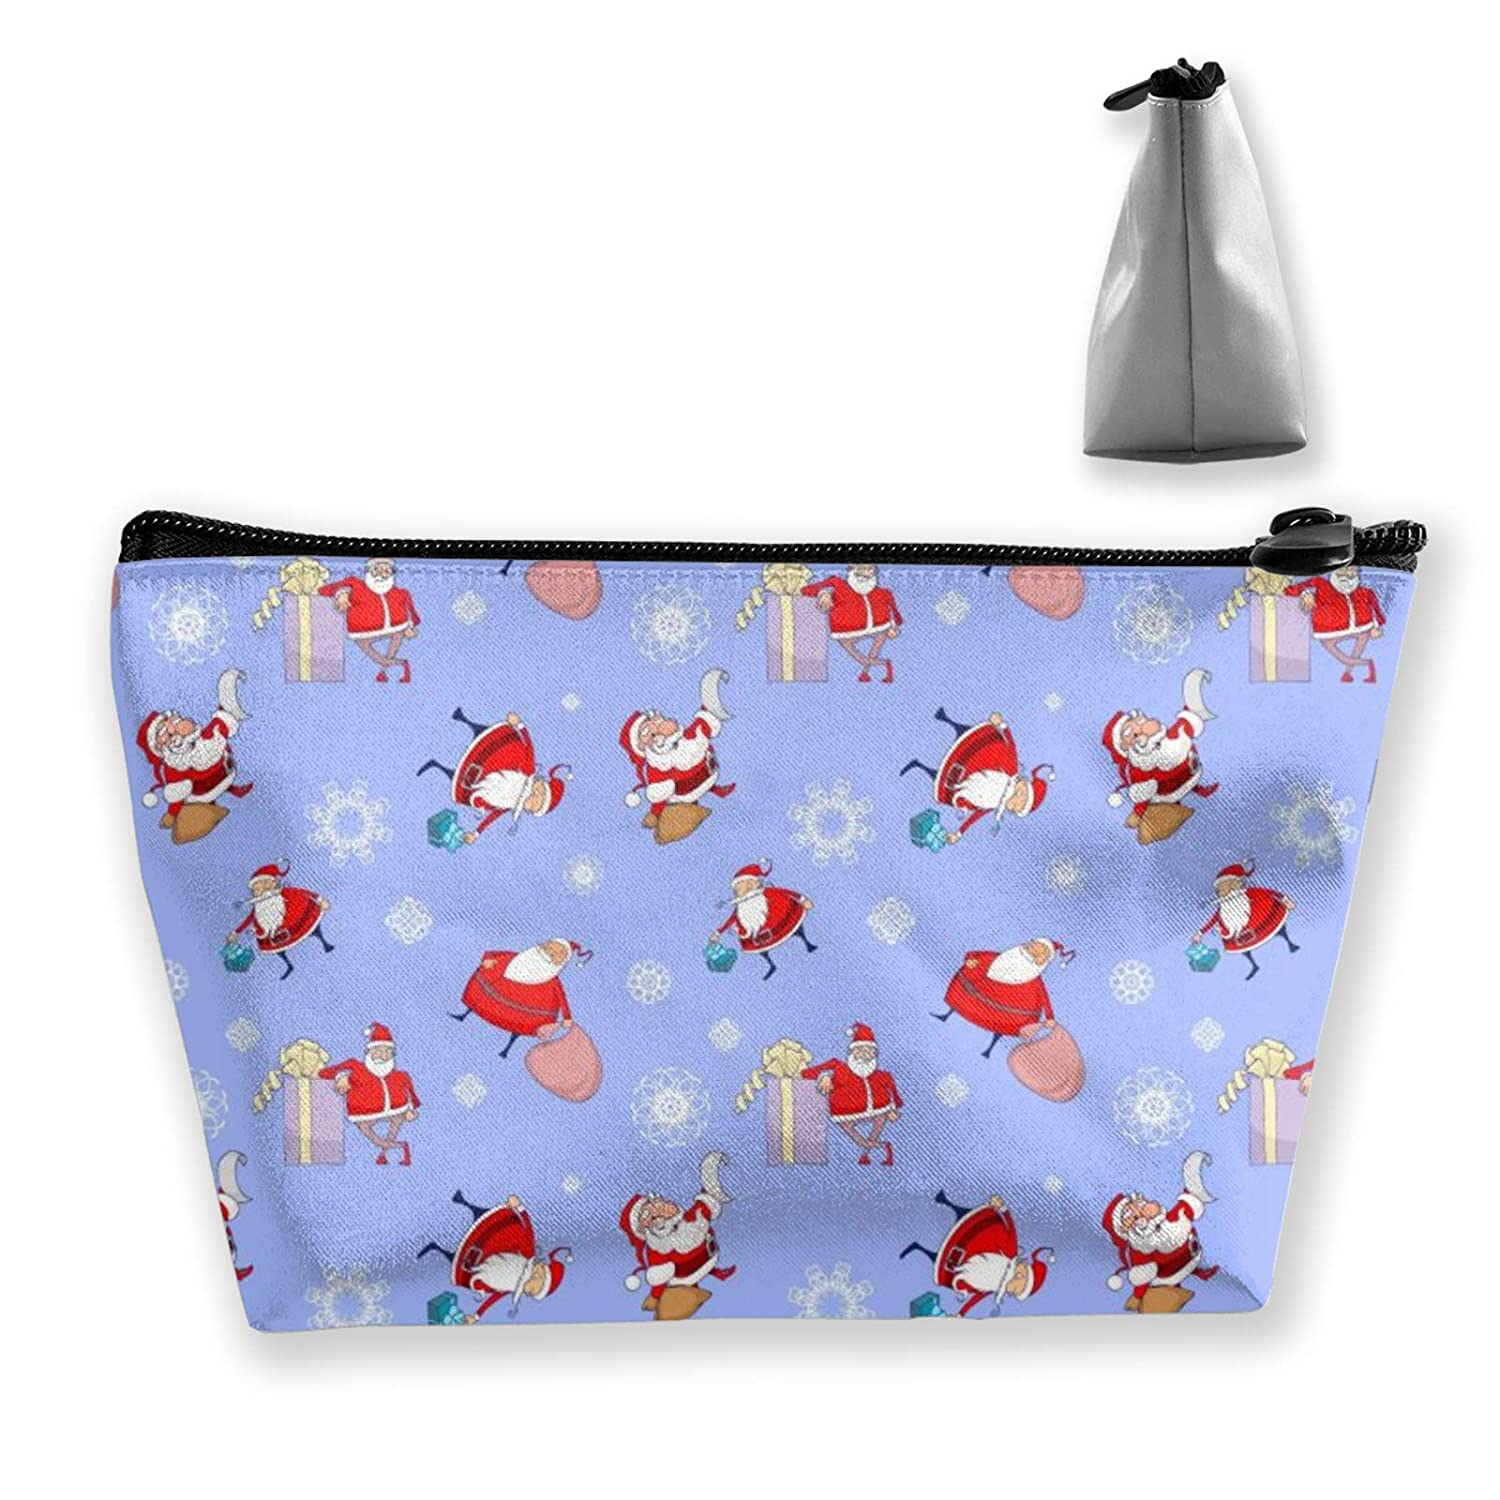 Lazy Makeup Case Santa Claus Gifts Clutch Bag Cosmetic Train Case Organizer Large Capacity Carry On Bag Luggage Pouch